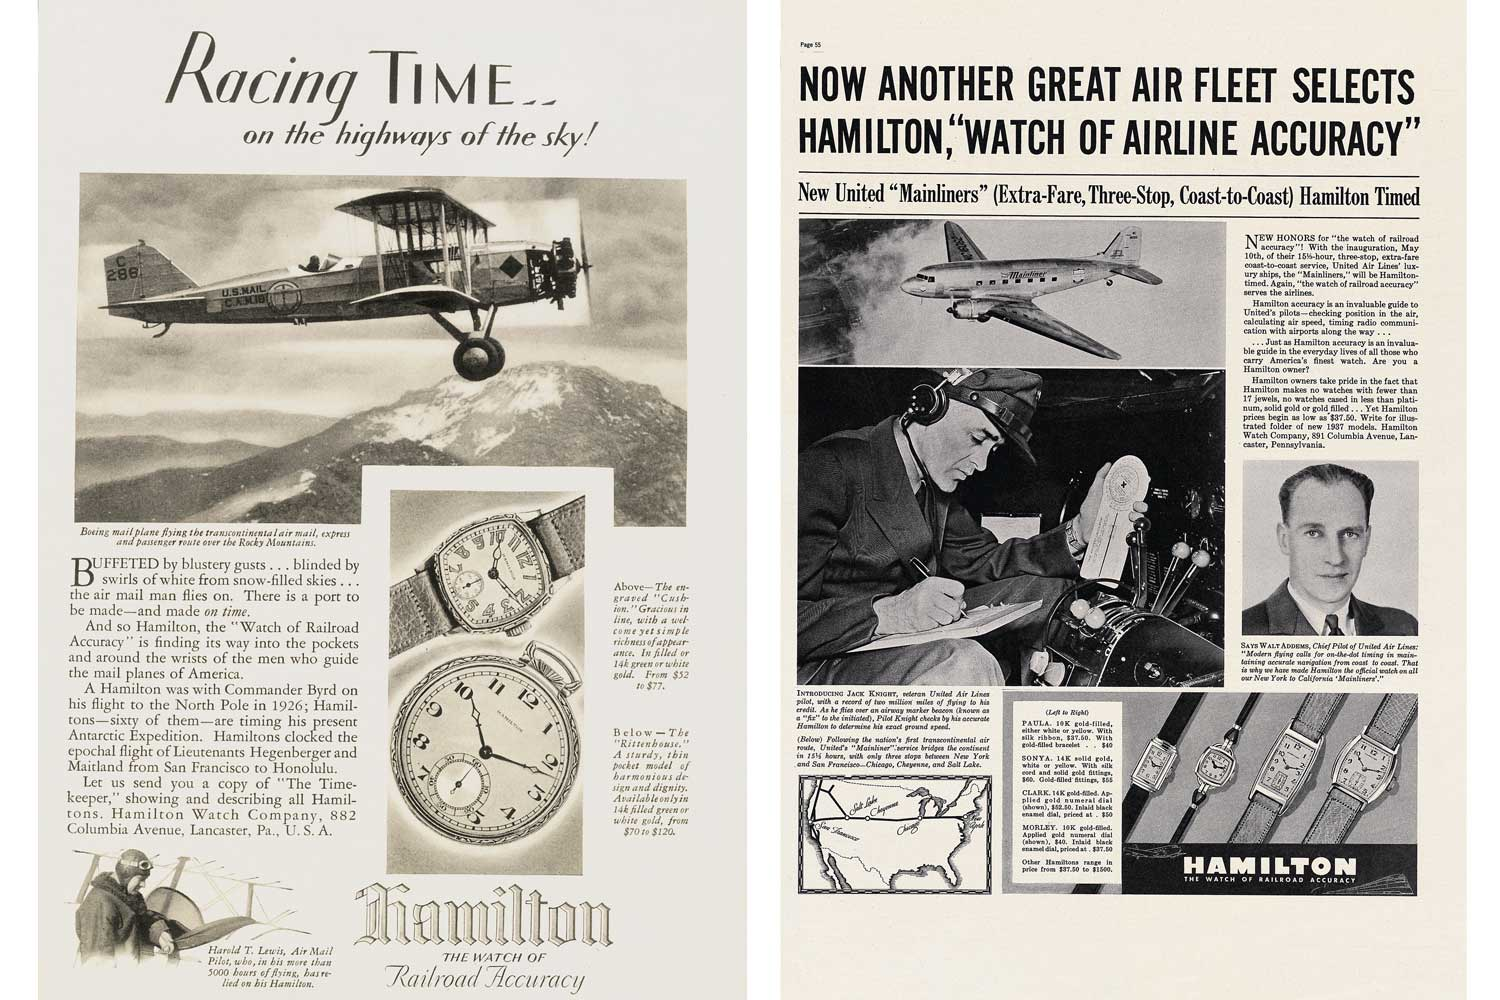 Old Hamilton advertisements showcasing the brand's pioneering work in creating precision tools for pilots.